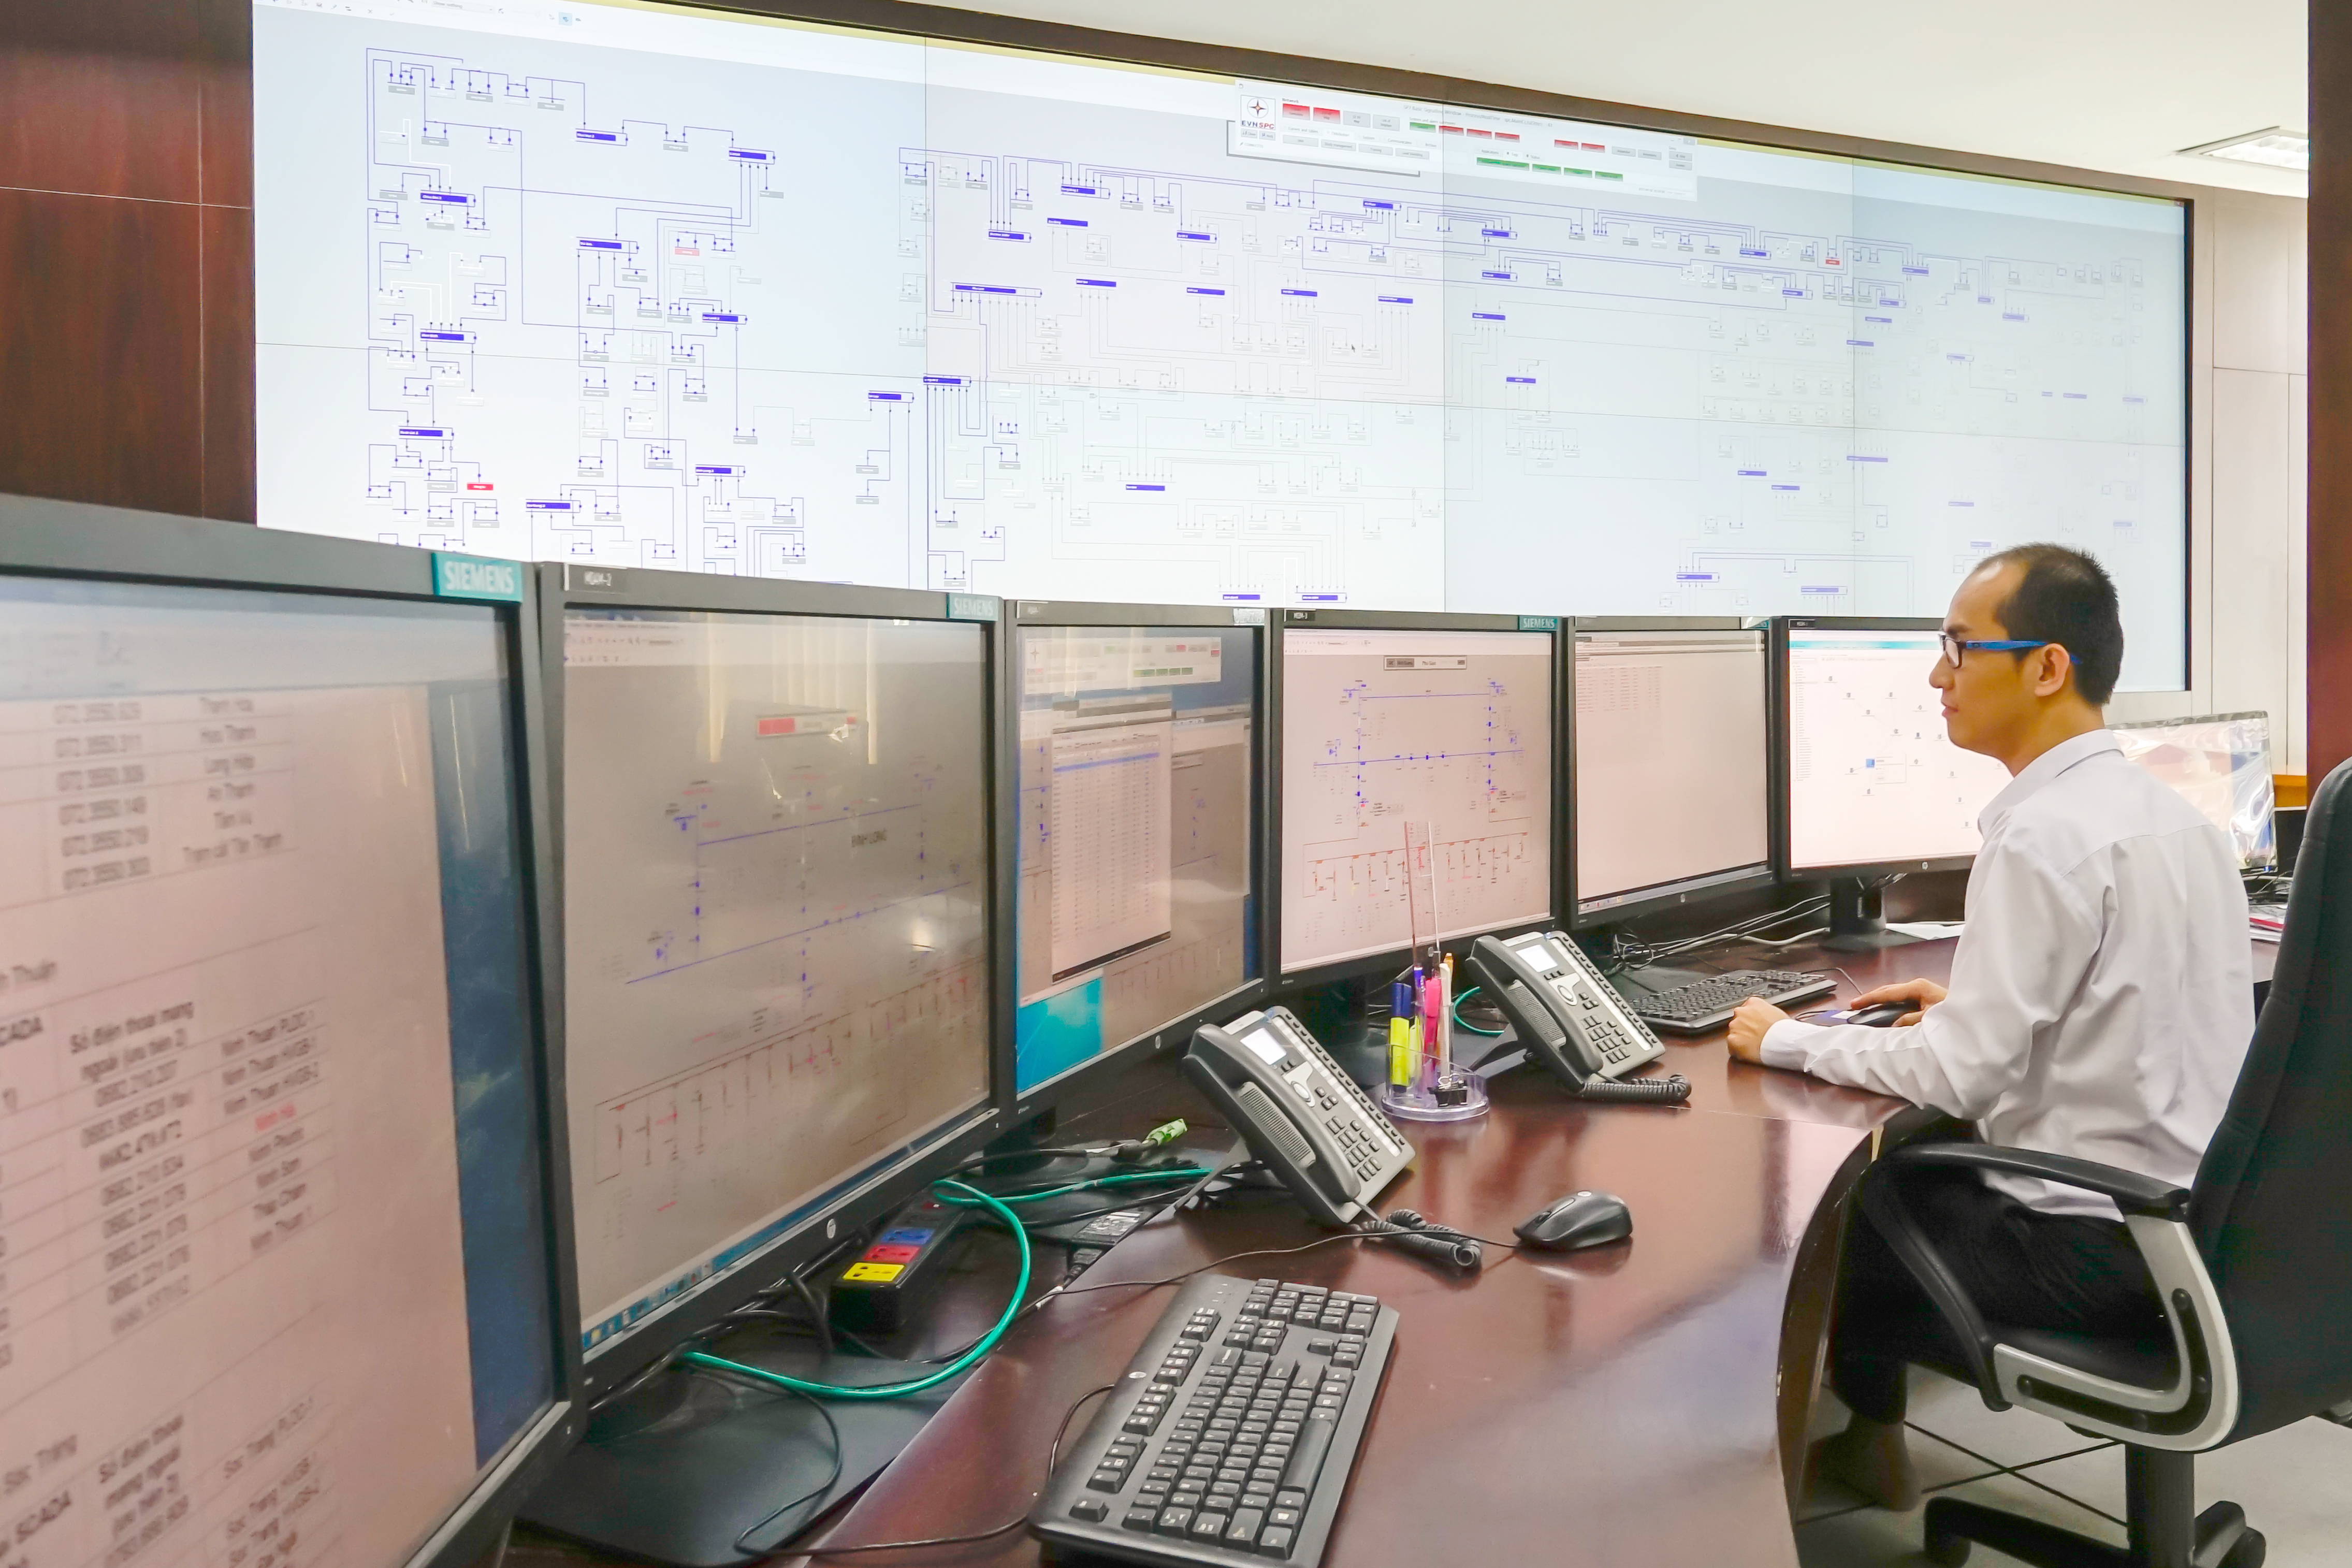 siemens and local power partner open new control centre for 21 provinces